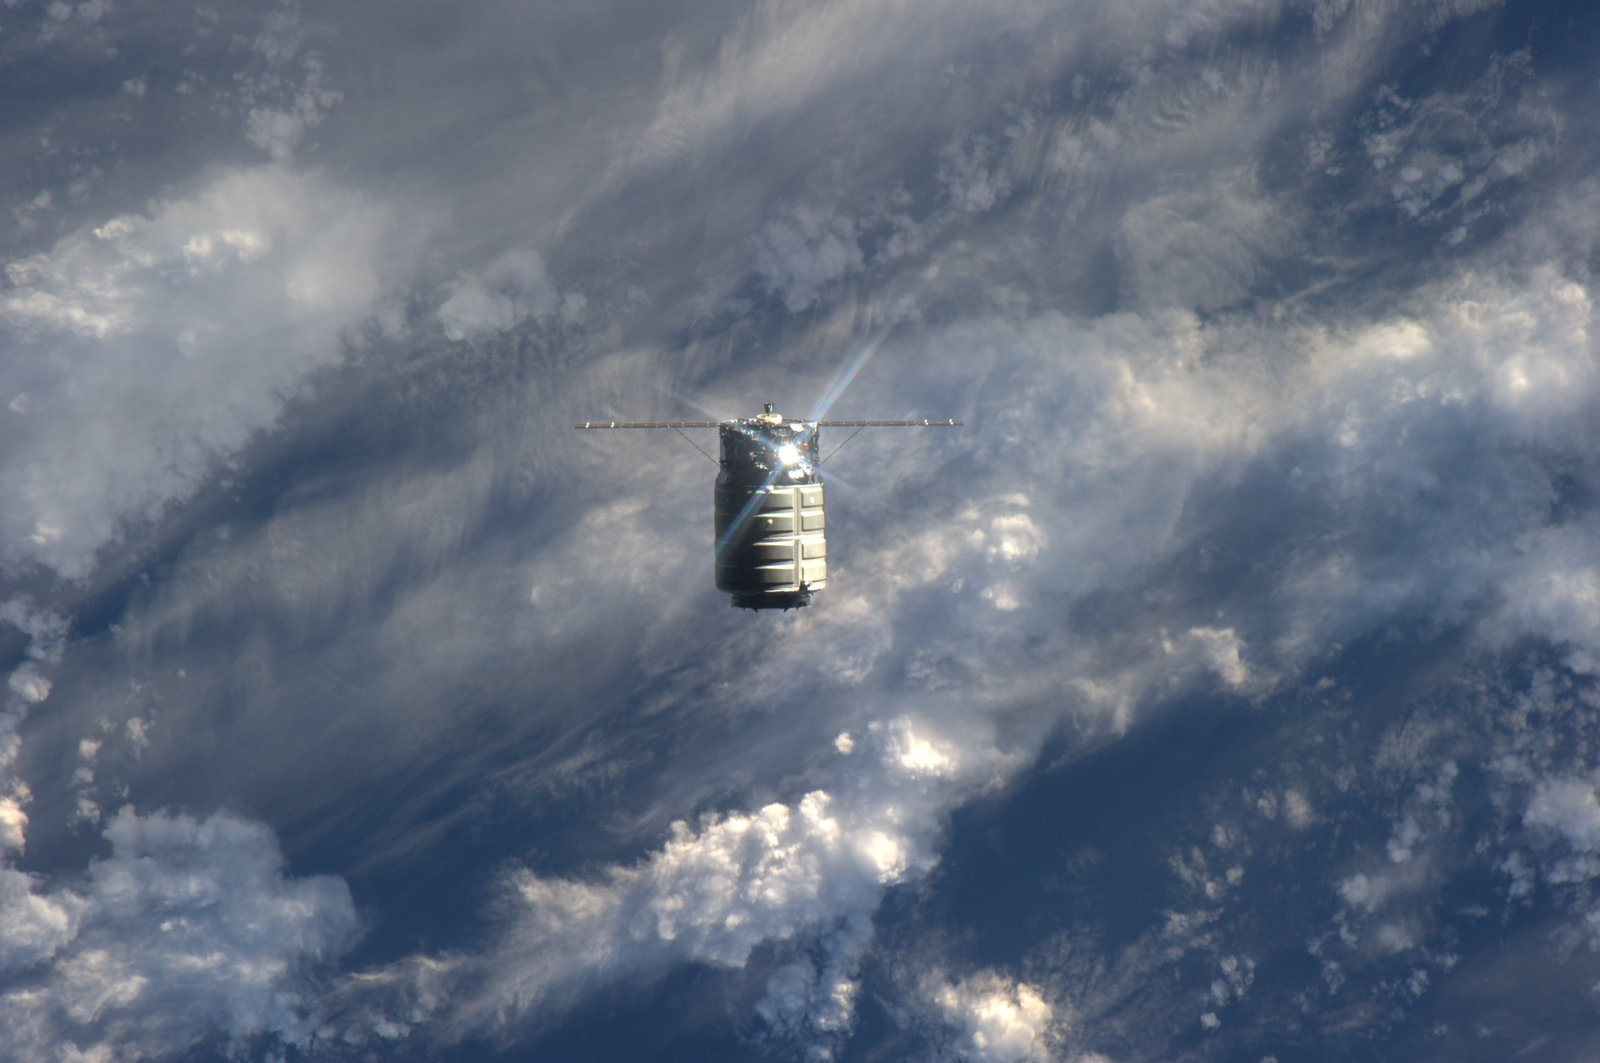 Private Space Race: 2 Commercial Spaceships Now Available for Space Station Deliveries